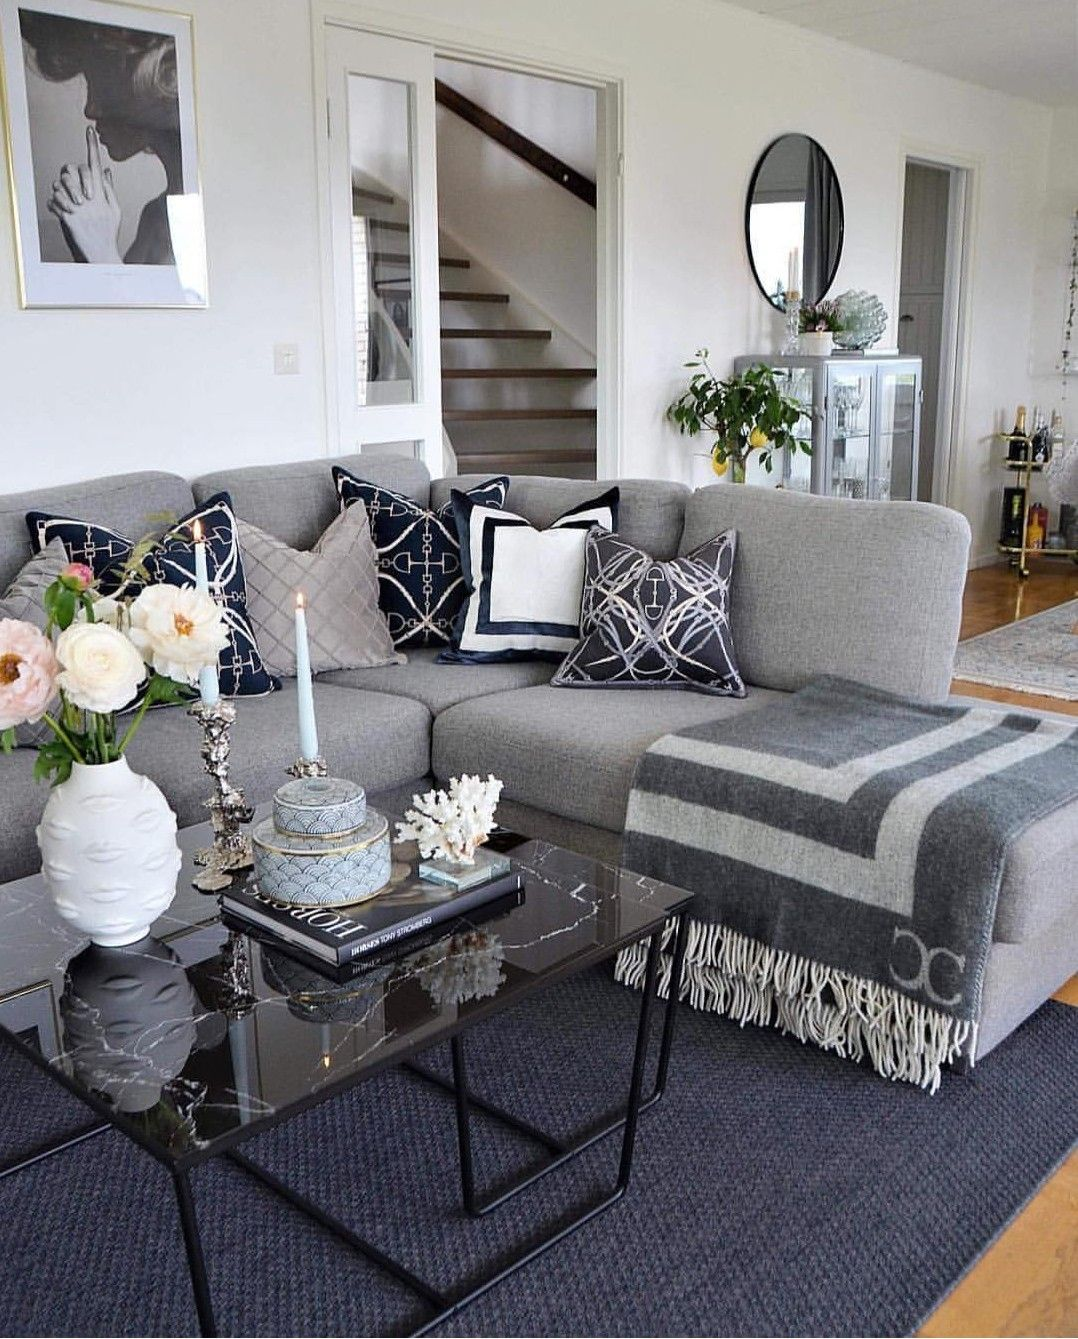 Pin By Margaret Justice On Home Decor Home Living Room Living